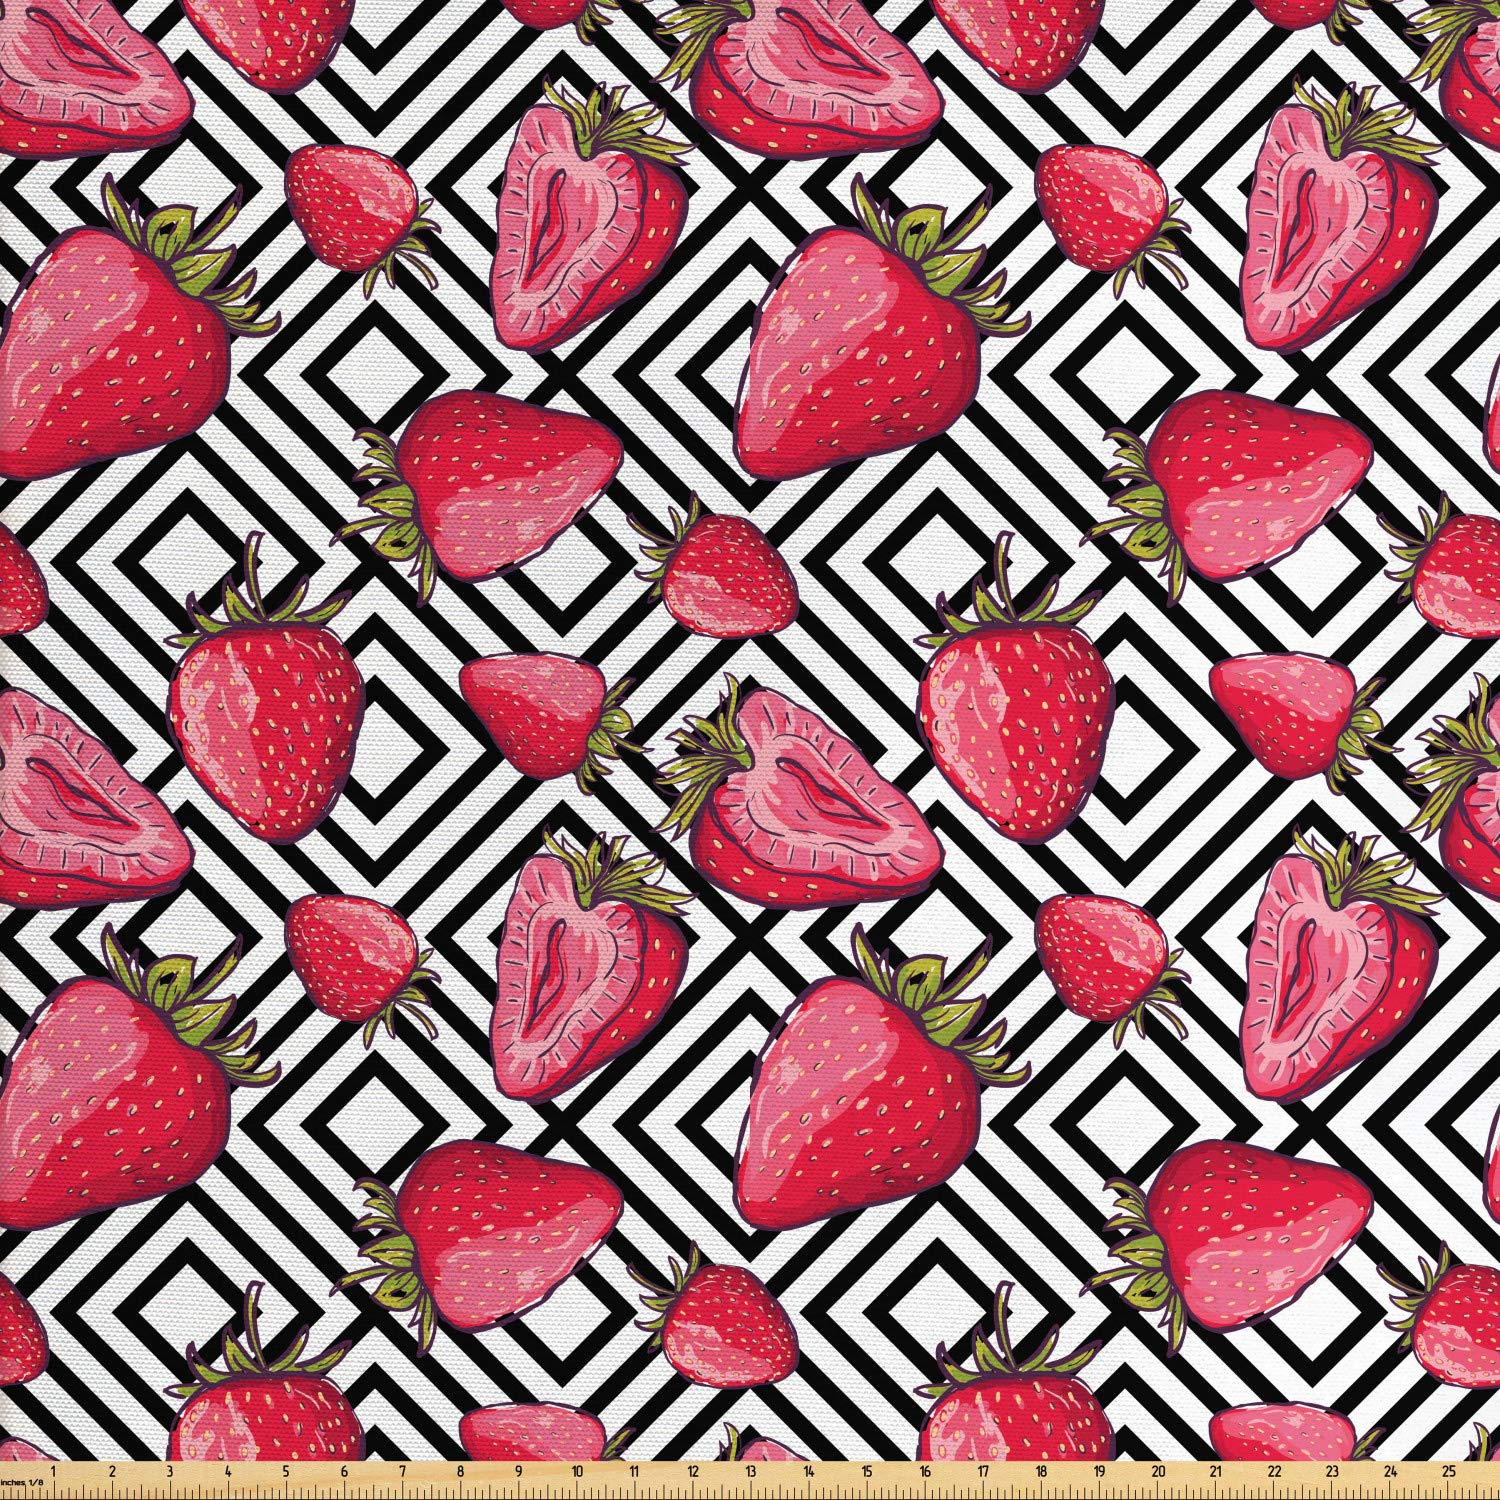 Ambesonne Fruits Fabric by The Yard, Strawberries on Minimalist Chevron Striped Pattern with Juicy Food Feminine Image, Decorative Fabric for Upholstery and Home Accents, 2 Yards, Black White